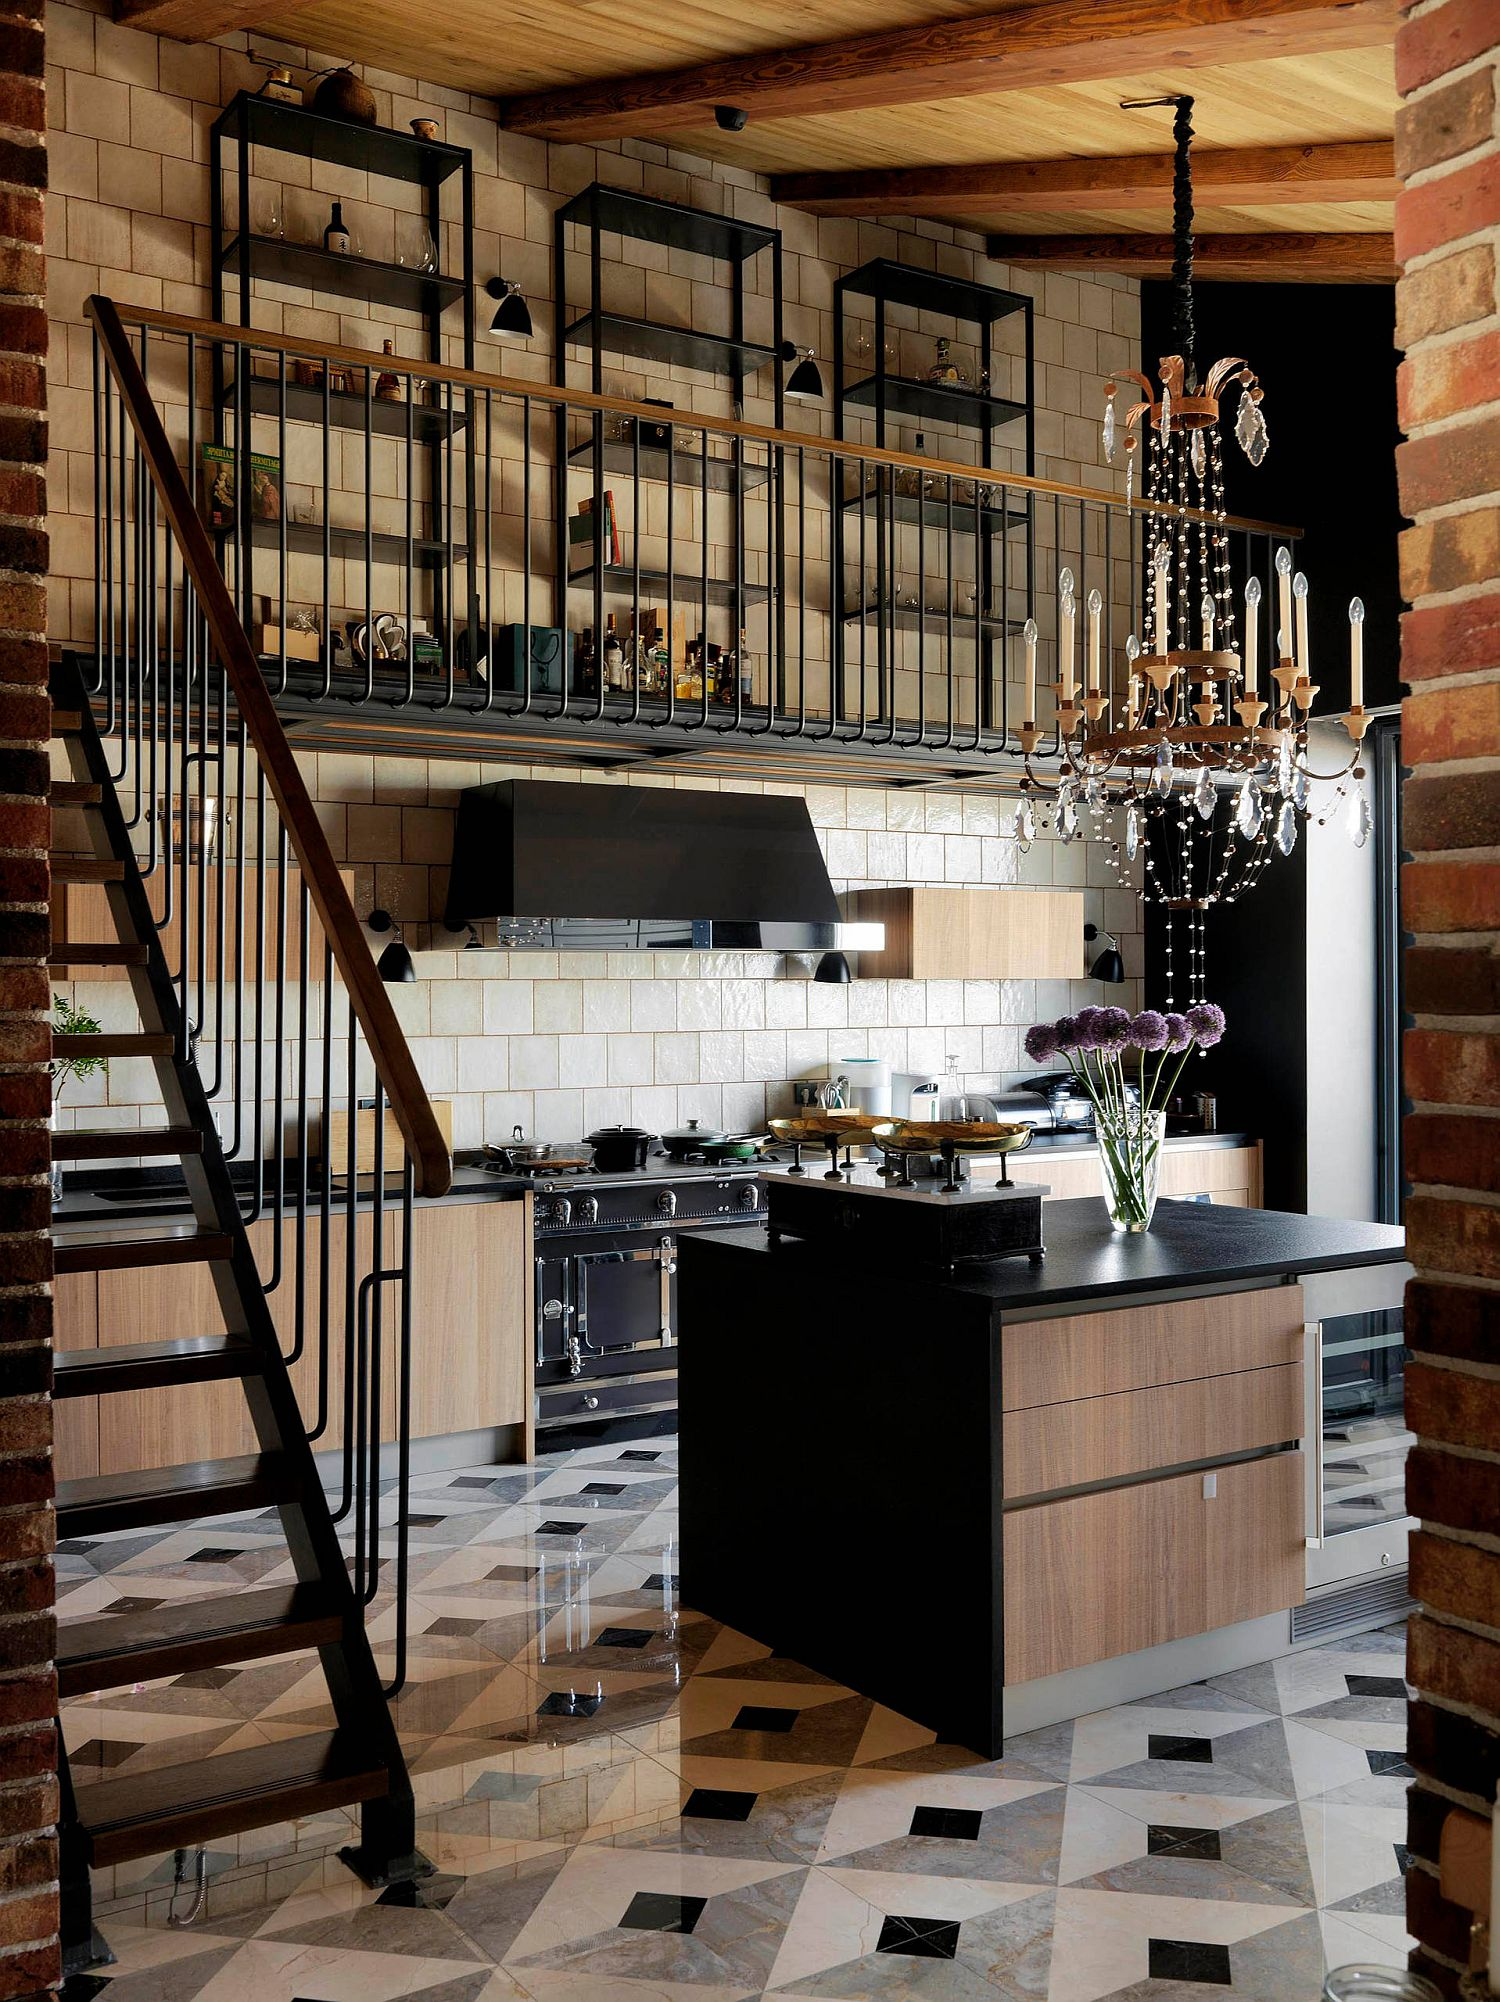 Beautiful industrial style kitchen full of textural contrast, black appliances and dark countertops